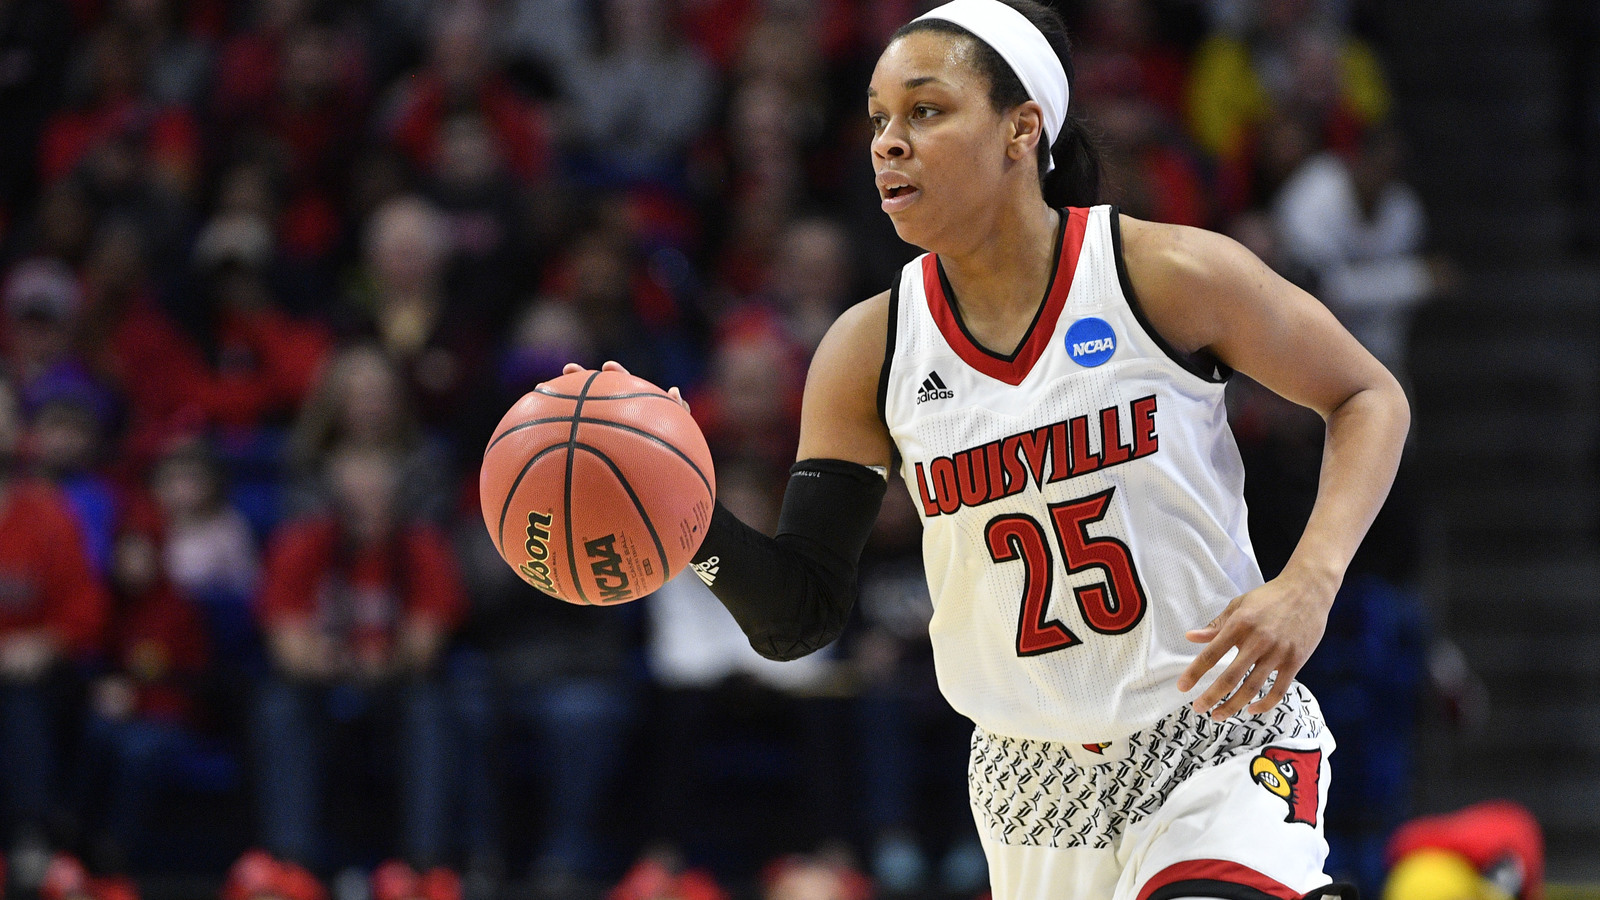 NCAA Women's Final Four: Watch Louisville vs